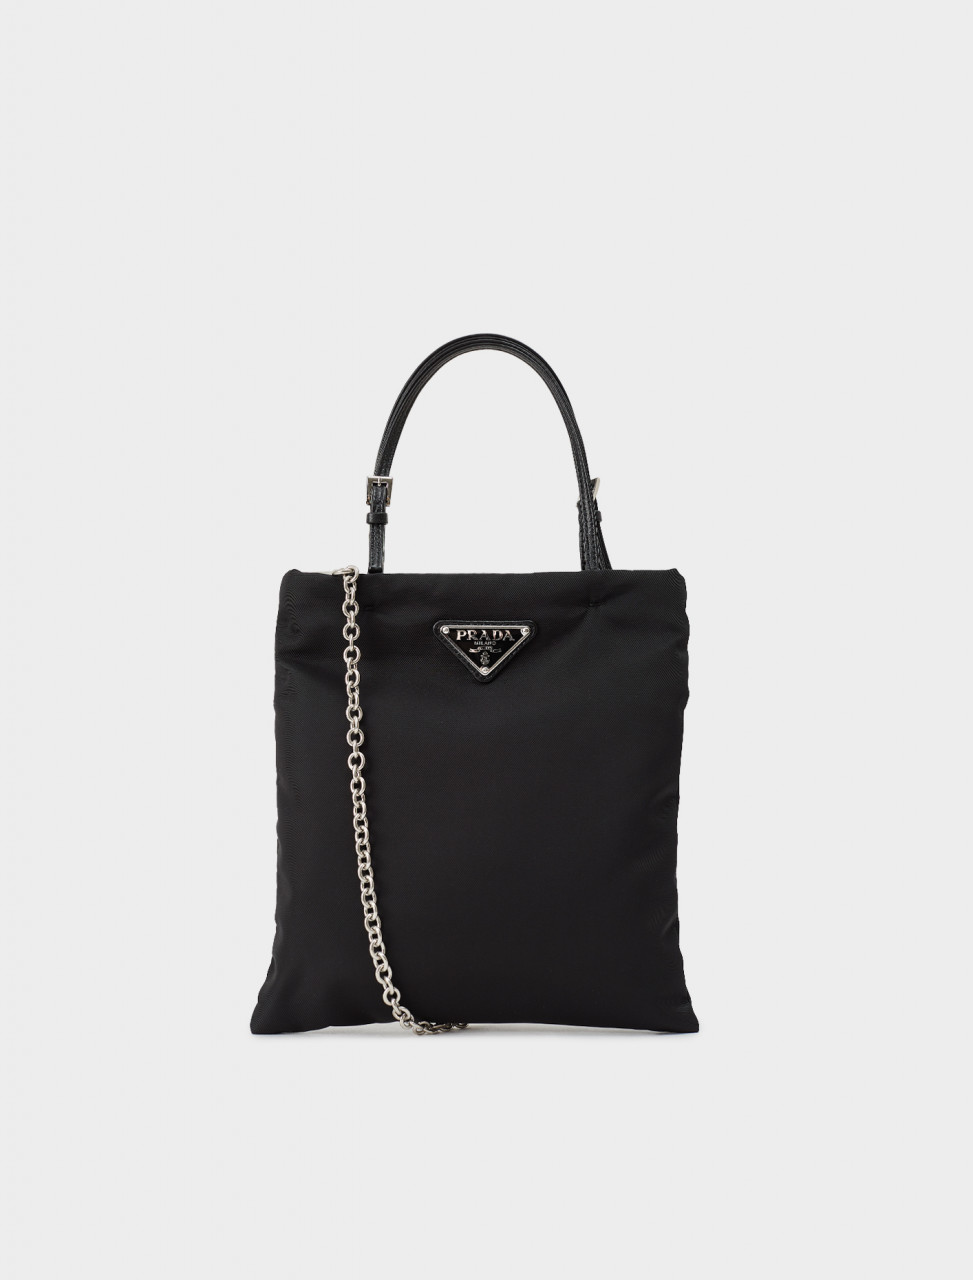 242-1BA252-074-F0002-V-OWL PRADA NYLON TOTE BAG WITH LEATHER HANDLES IN BLACK